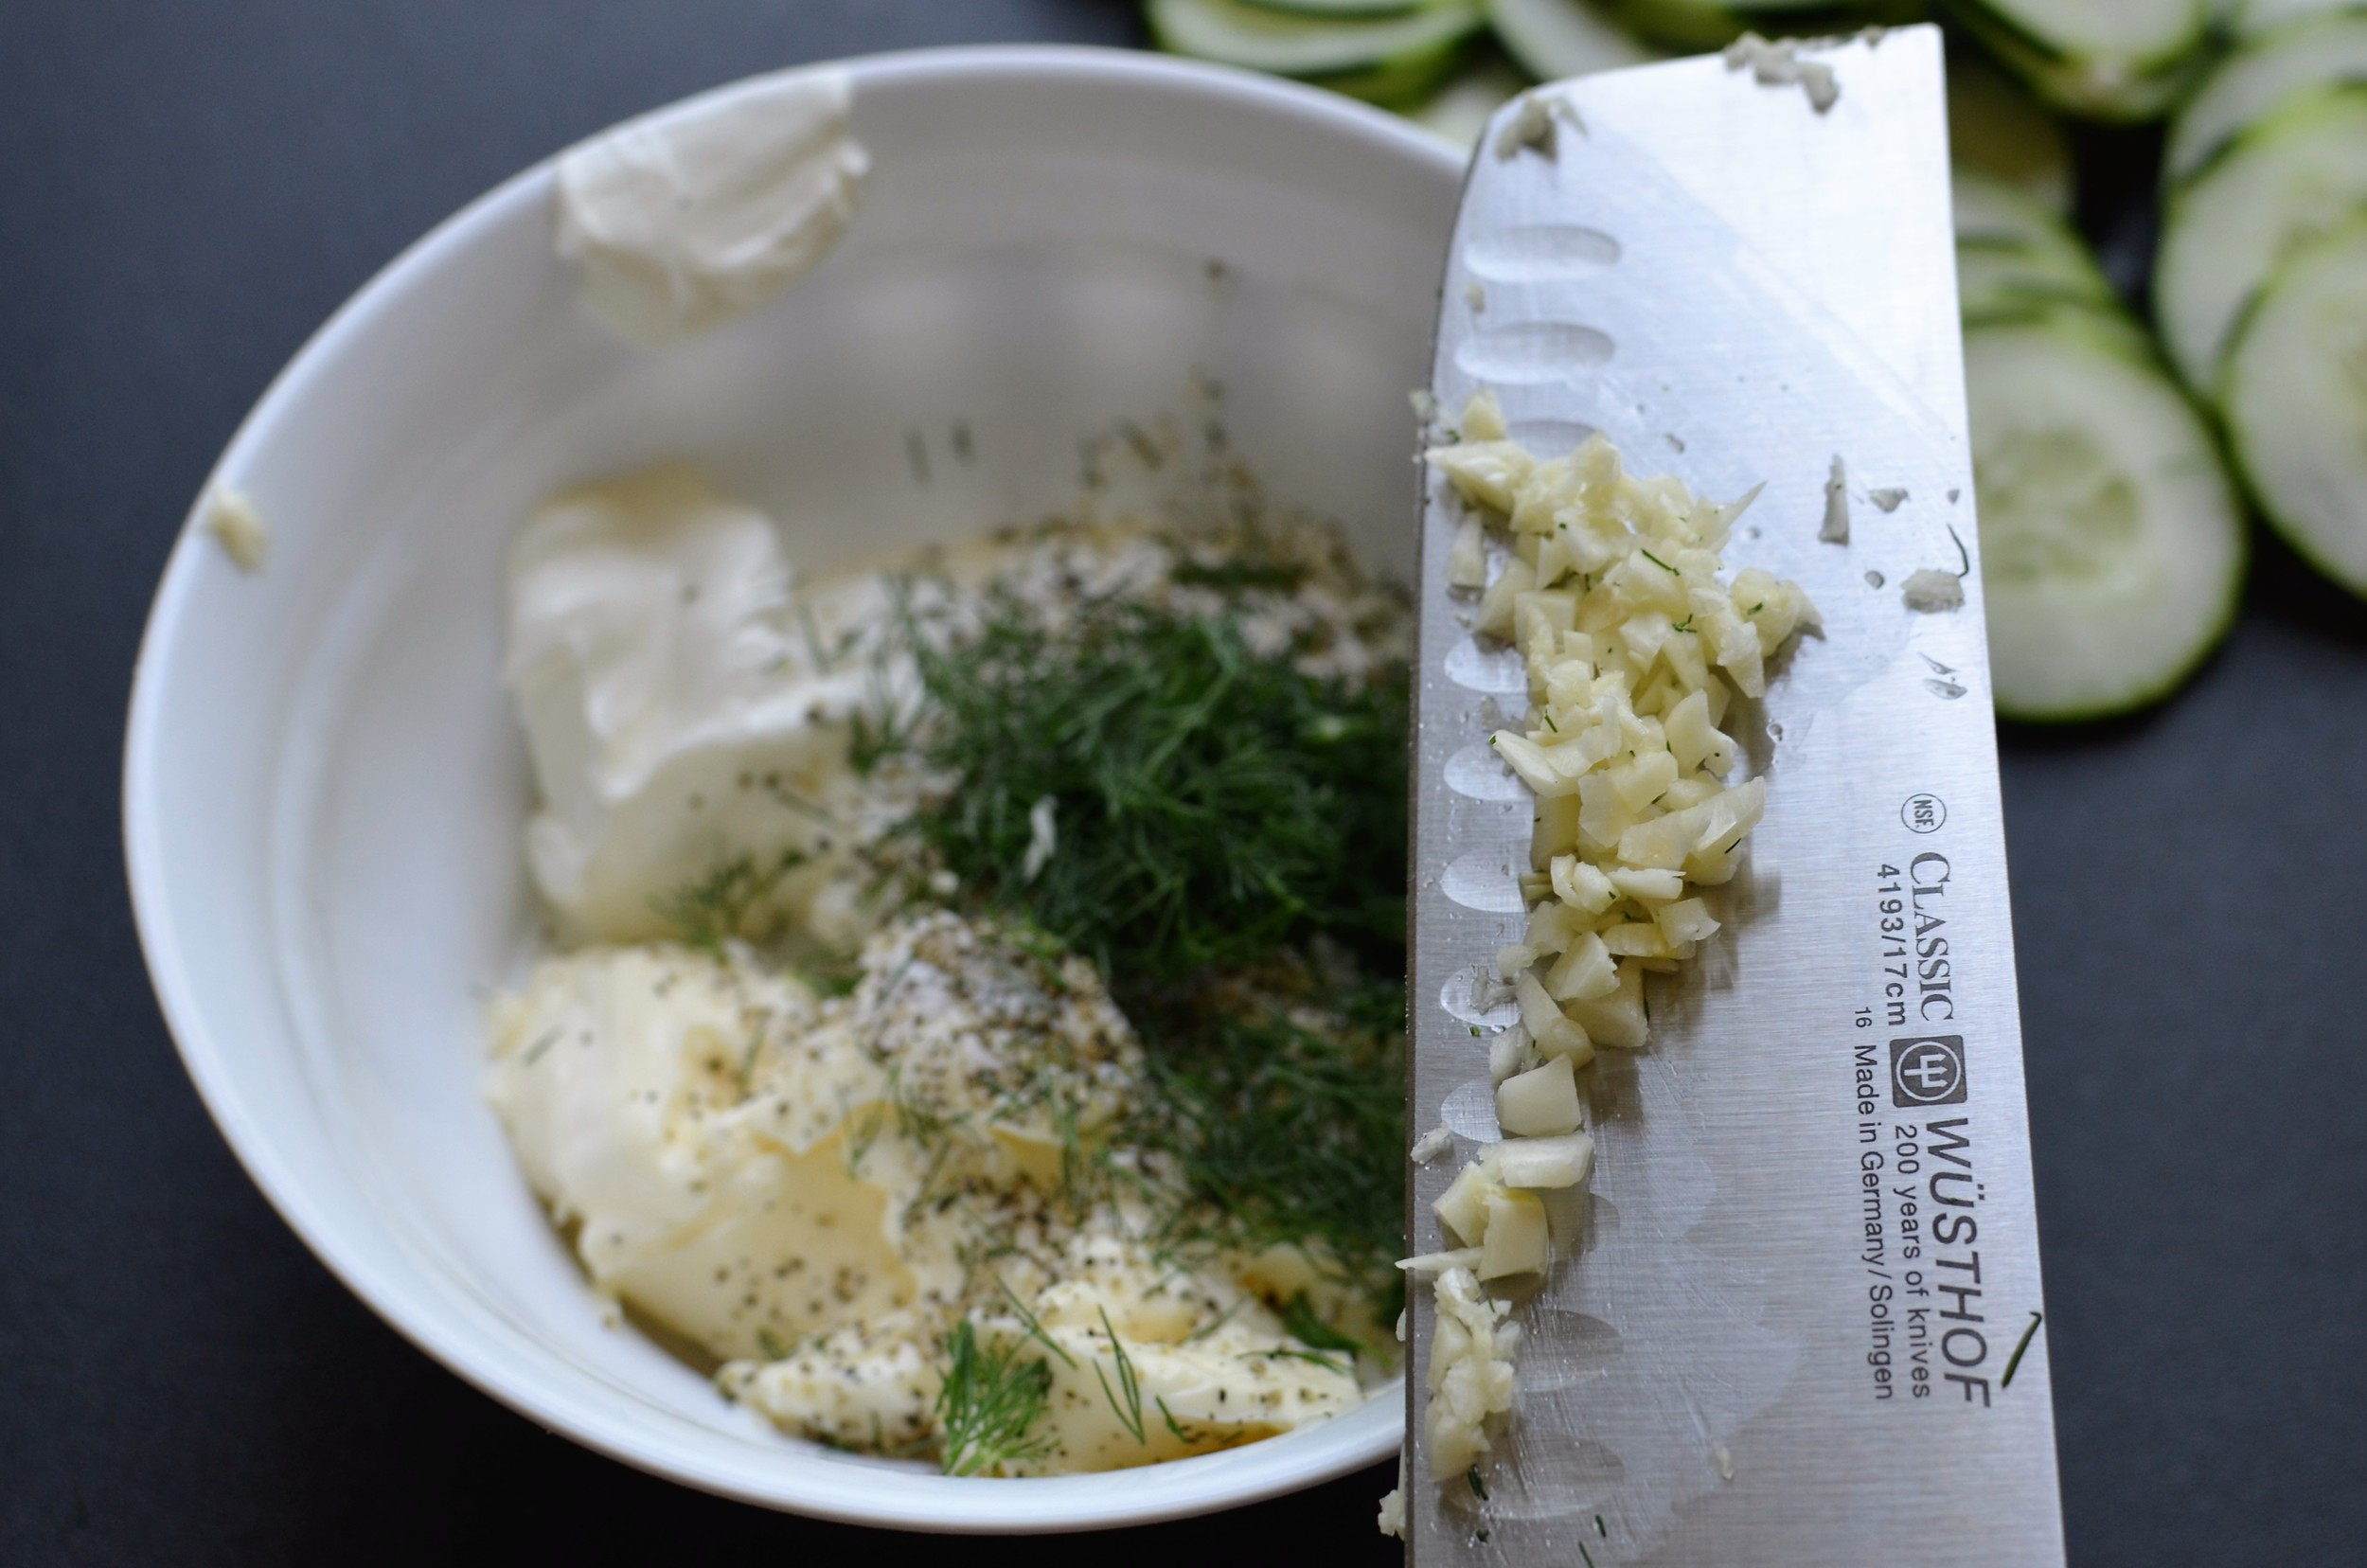 how to make the dressing for cucumber salad usuing plain greek yogurt or sour cream, mayo, fresh dill, minced fresh garlic, salt and pepper.